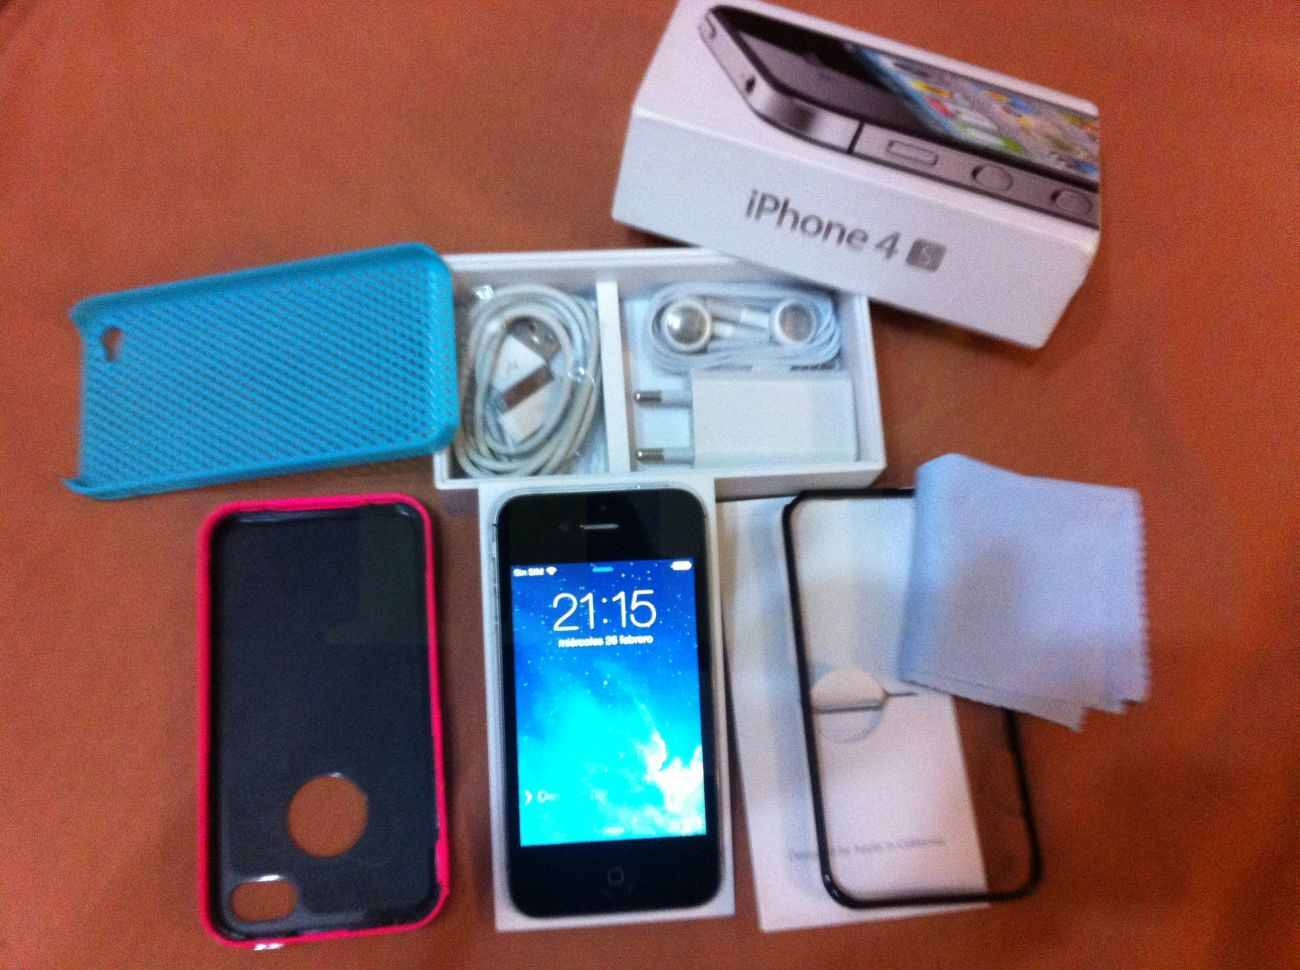 Iphone 4s 16gb Libre Venta Iphone 4s 16gb Color Negro Libre Y Perfecto Venta